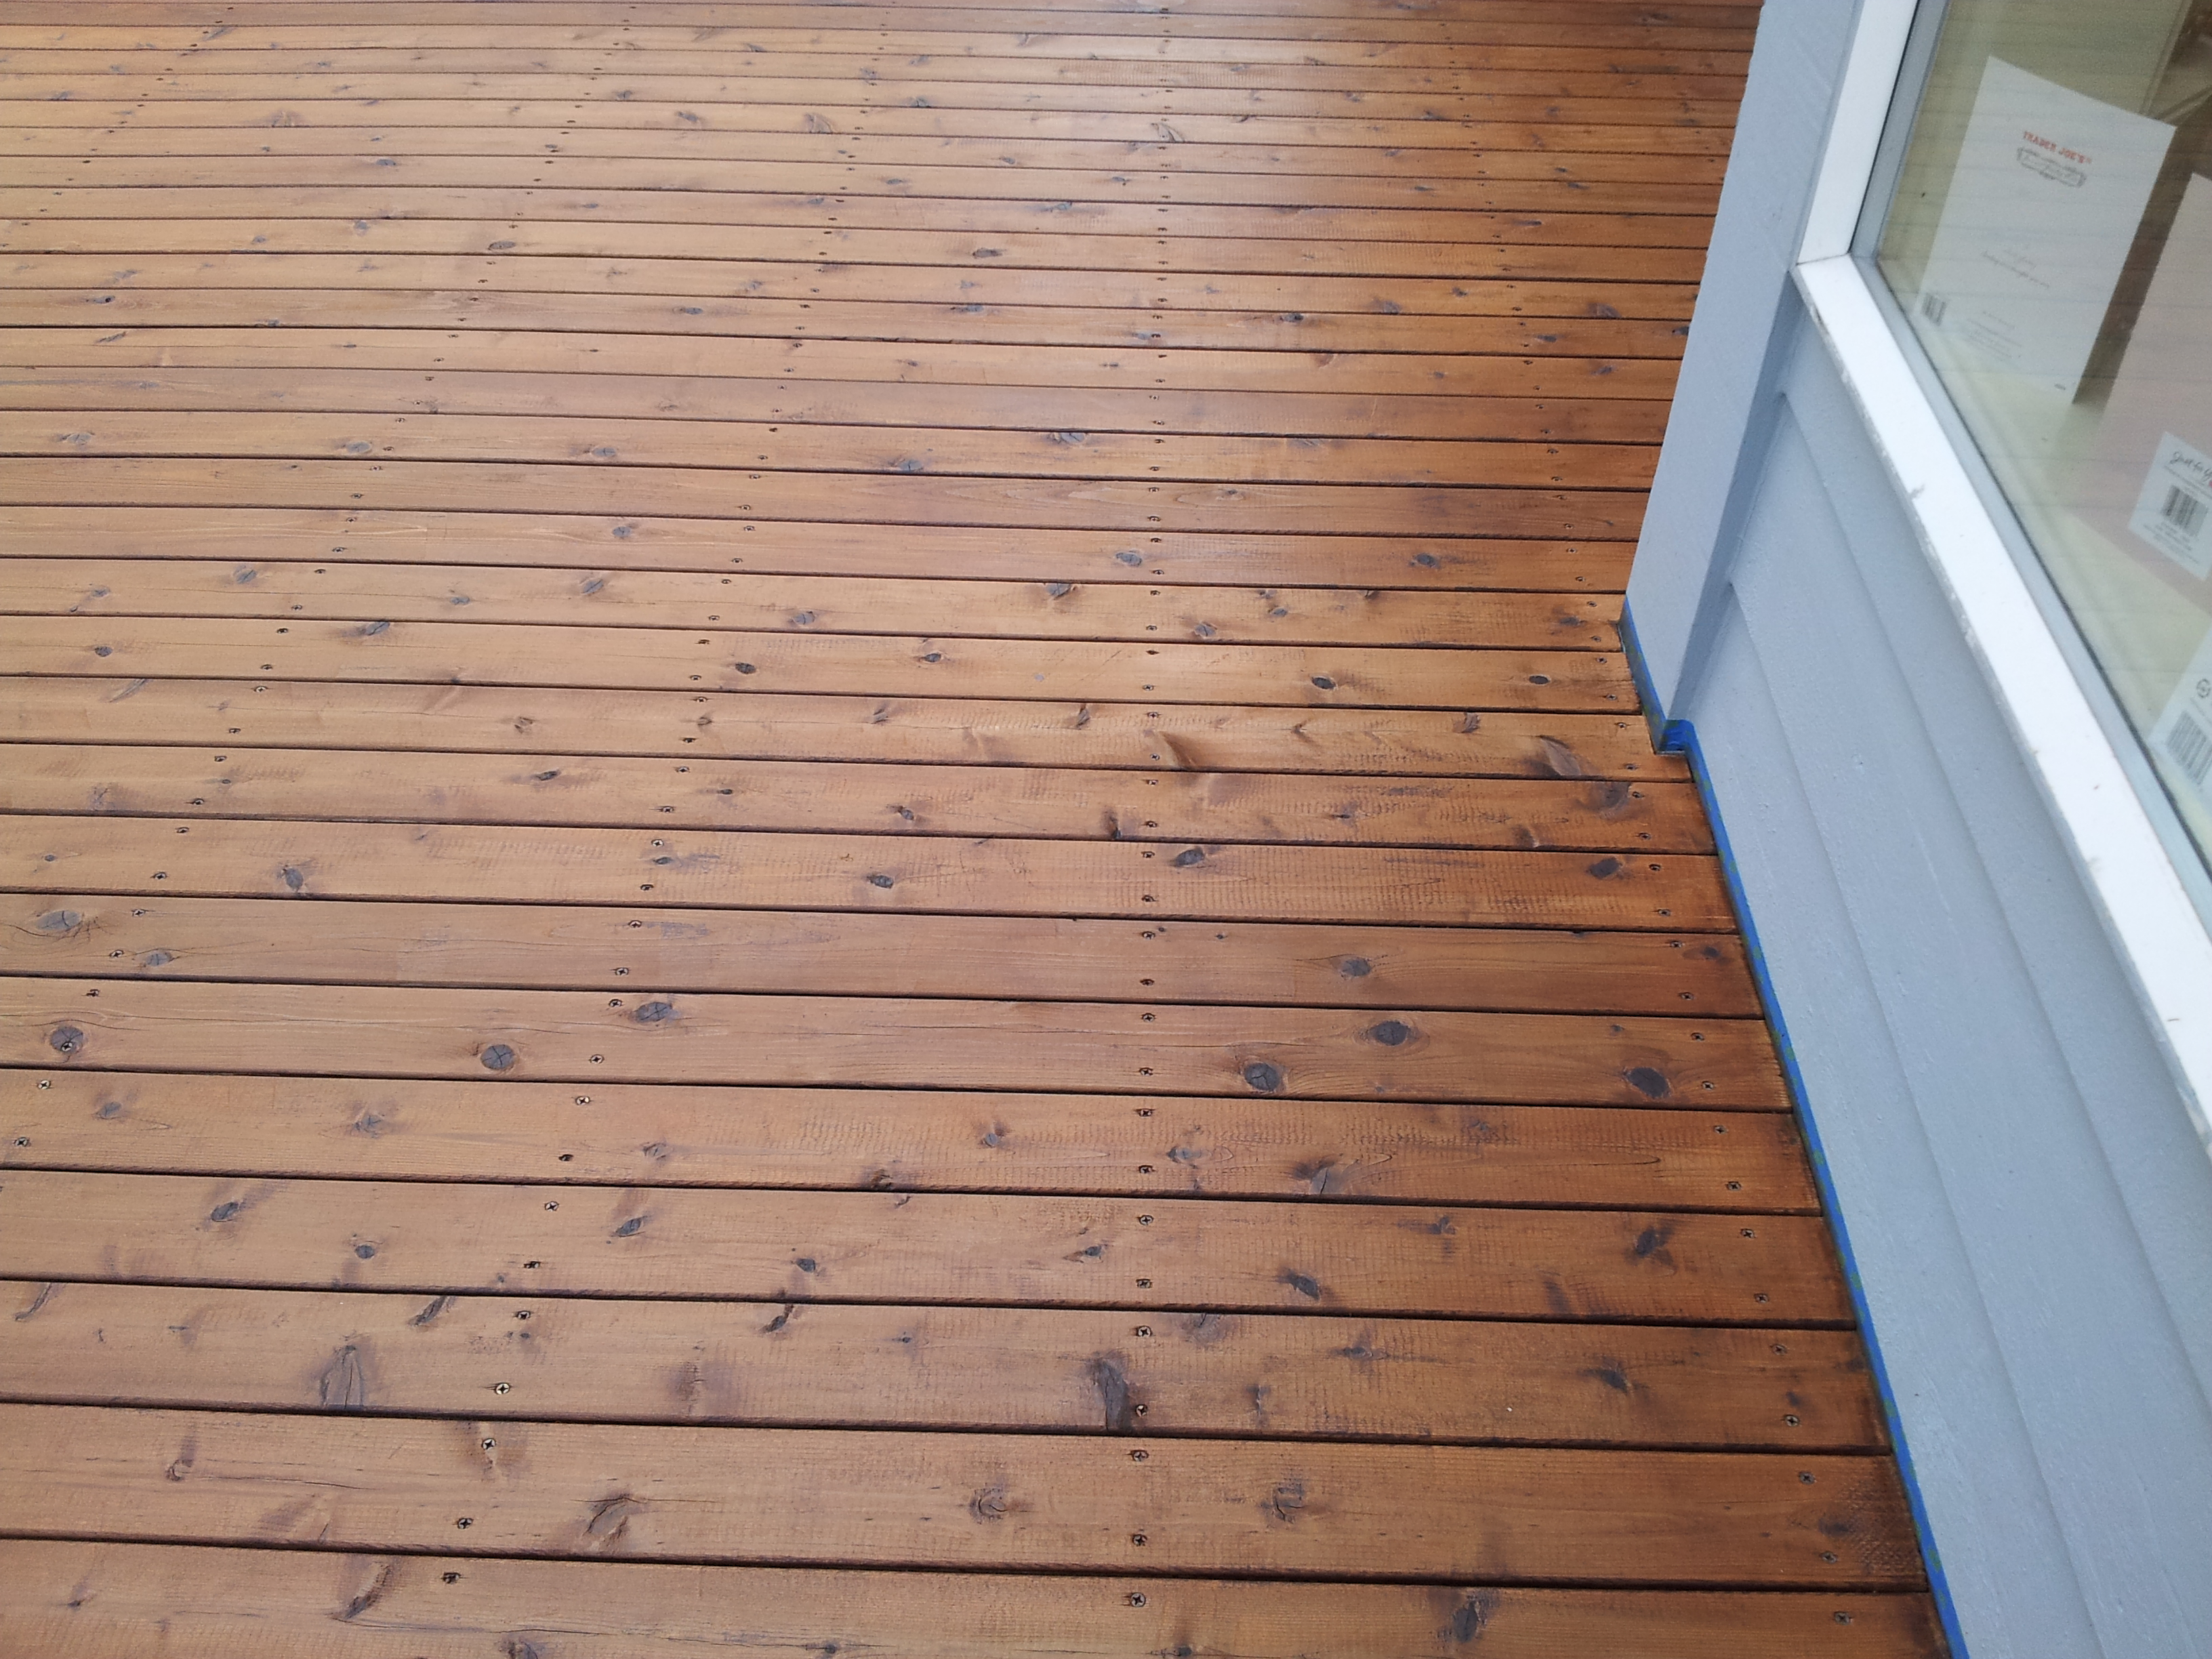 Oil Based Deck Stains 2019 Best Deck Stain Reviews Ratings intended for size 3264 X 2448